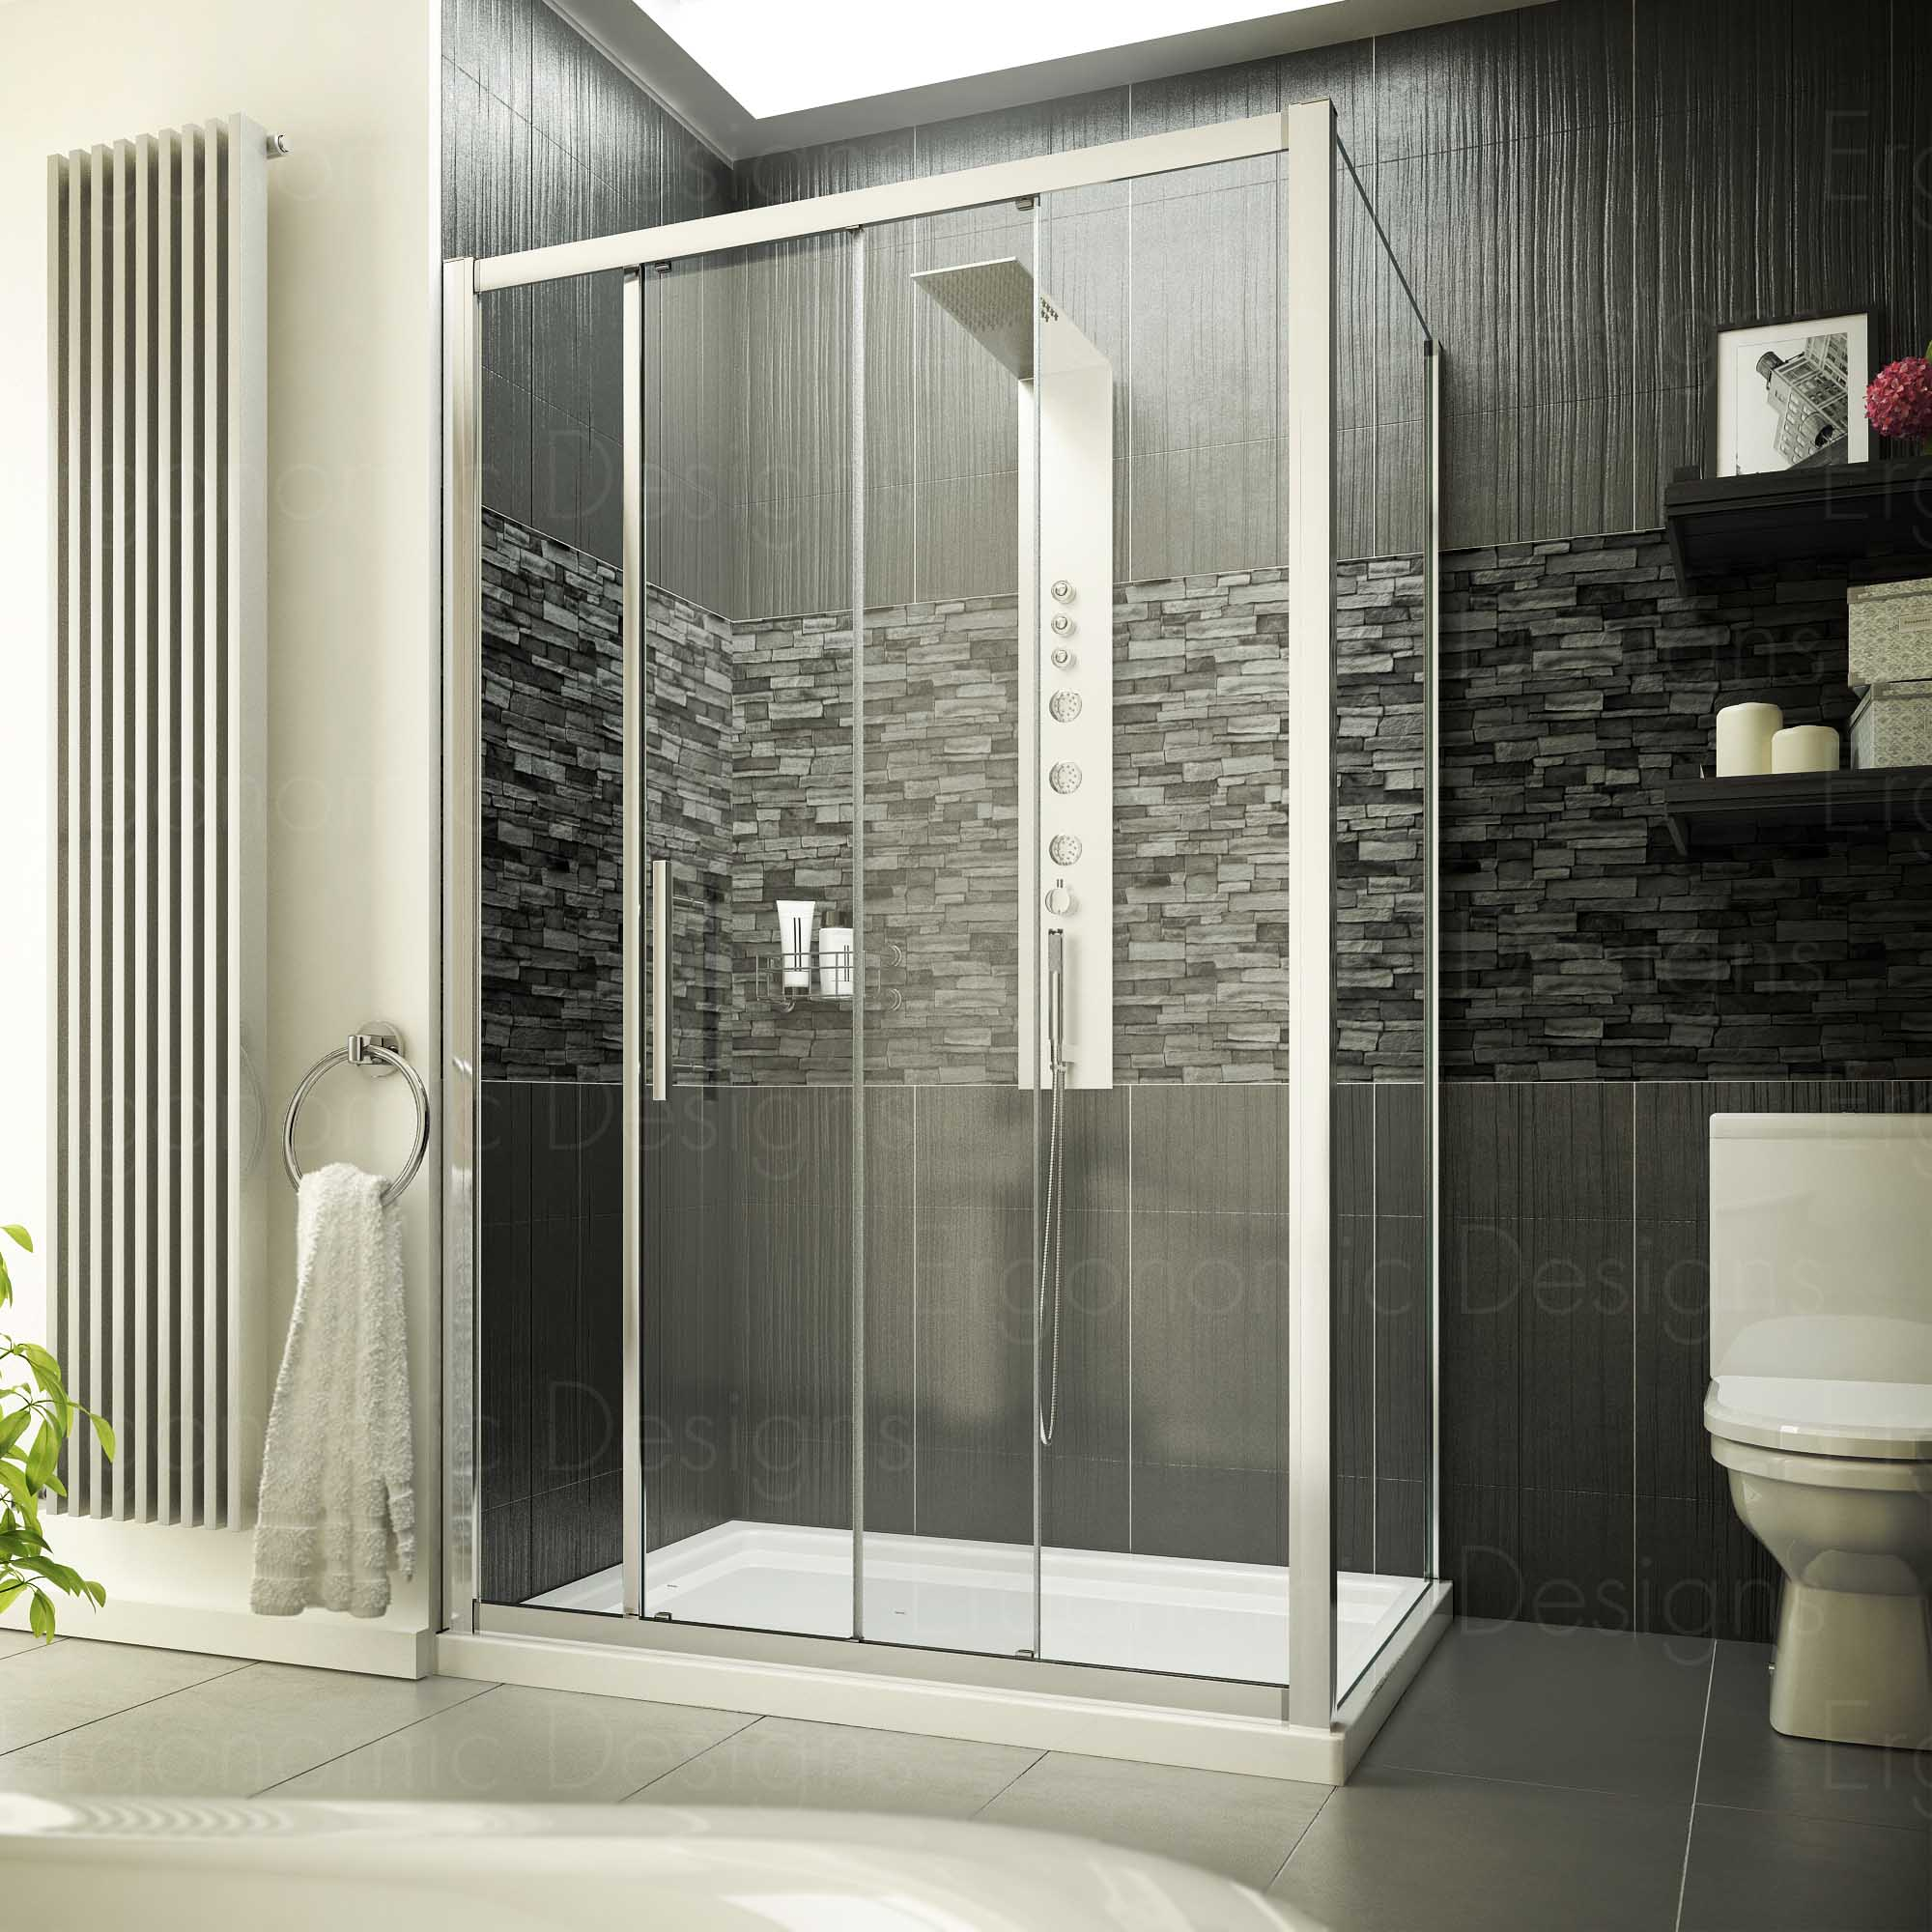 1000 x 760 Sliding Door Shower Enclosure 8mm Easy Clean Glass and ...